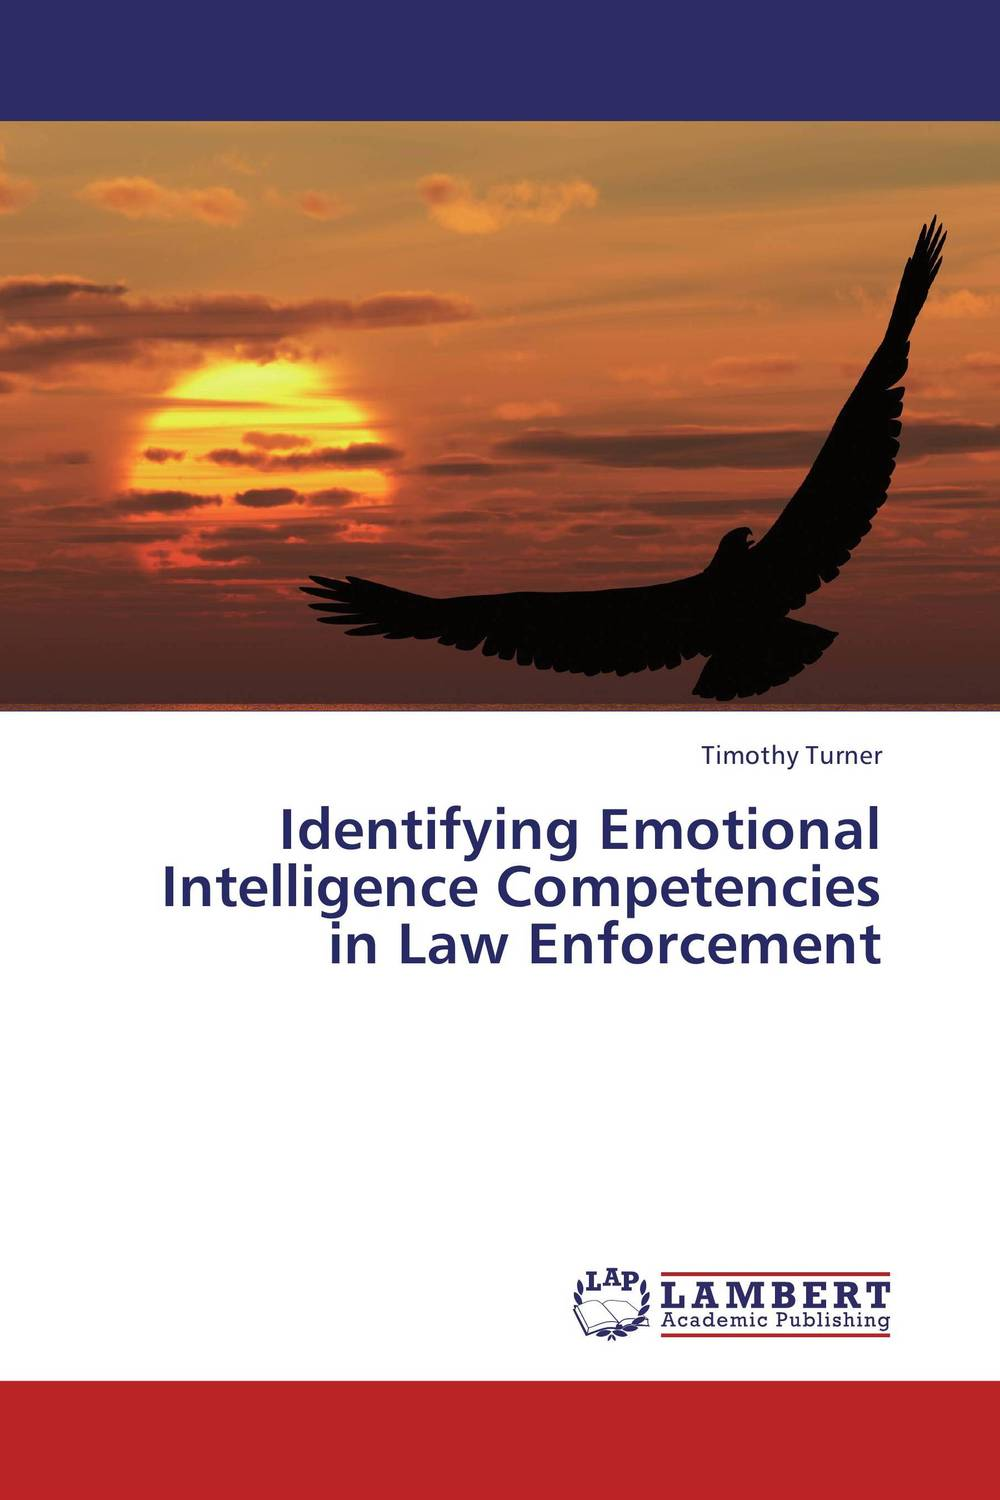 Identifying Emotional Intelligence Competencies in Law Enforcement diana giddon unequaled tips for building a successful career through emotional intelligence